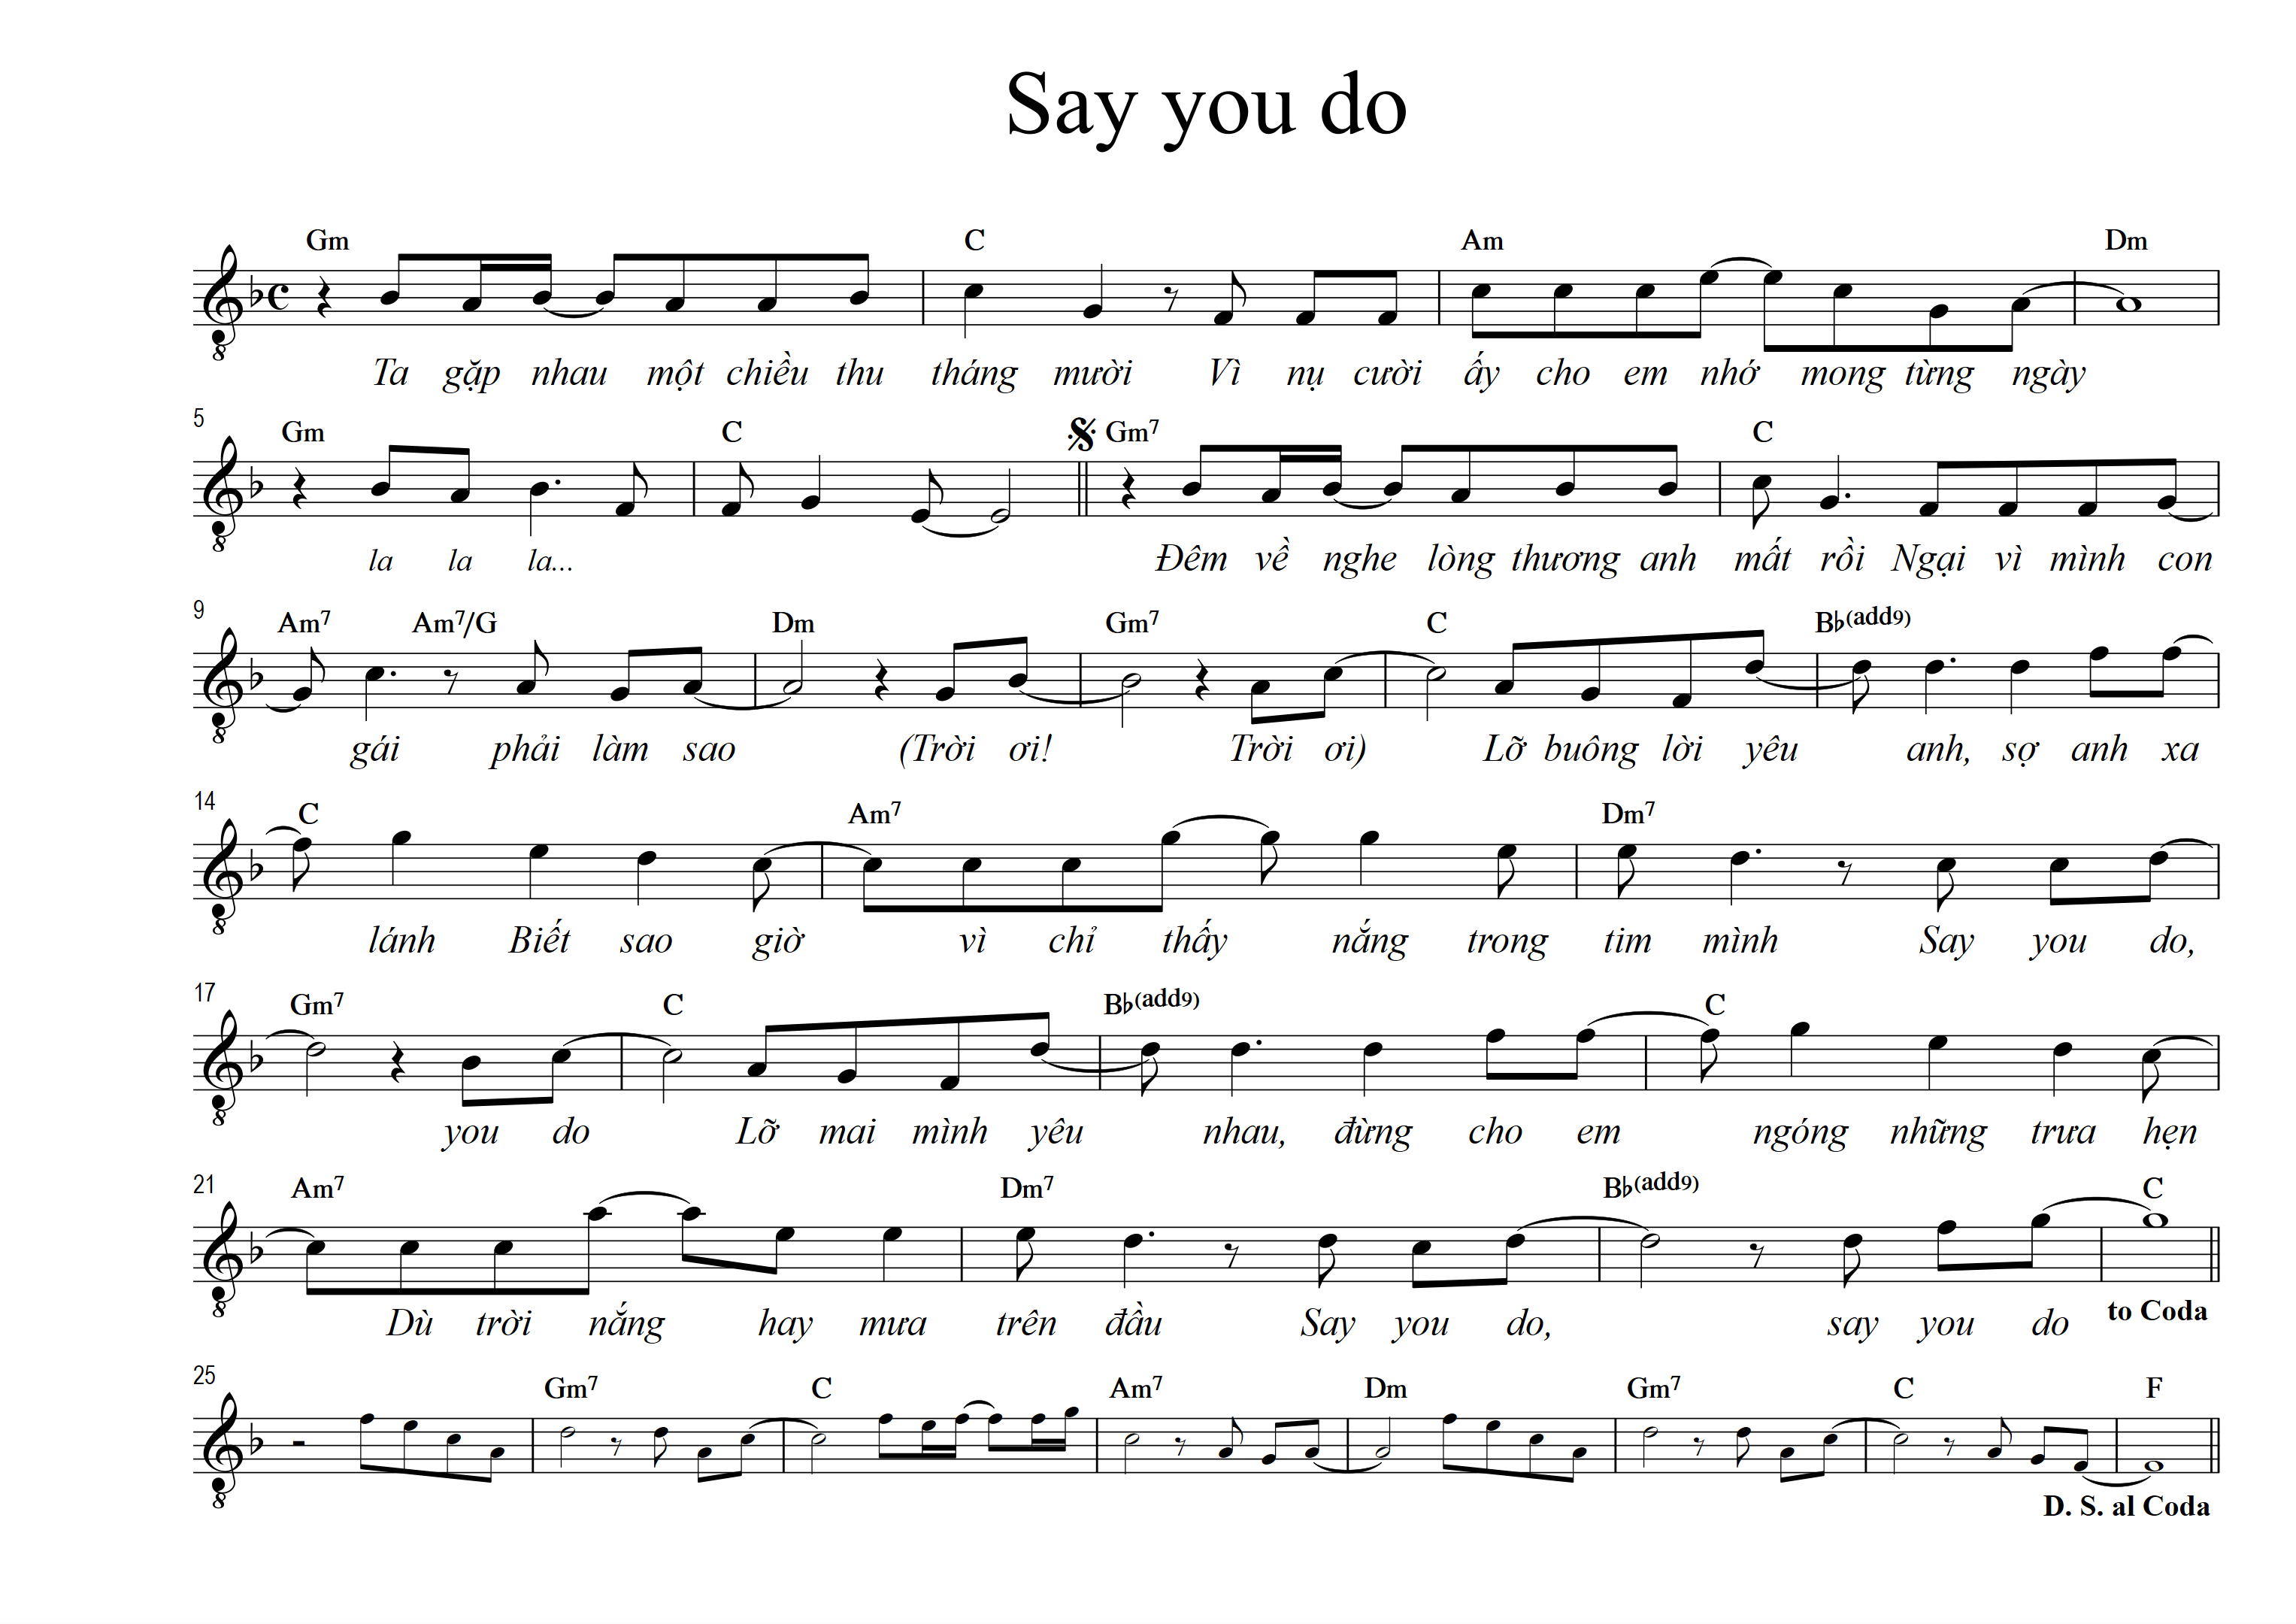 Say you do 1